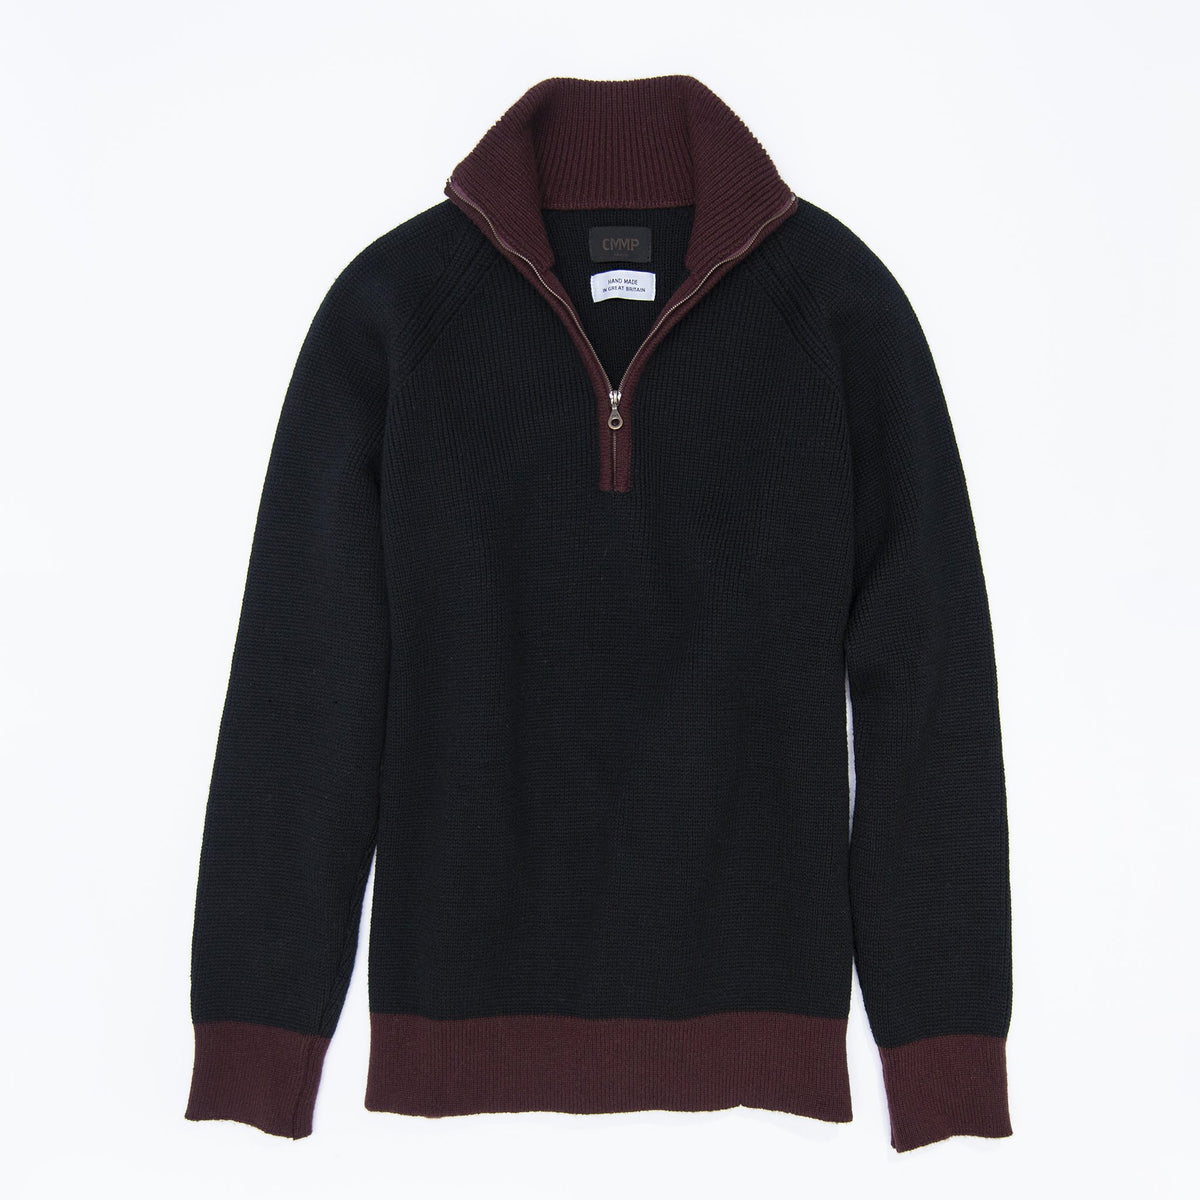 1/4-Zip 3-Ply Sweater - Black / Dark Red